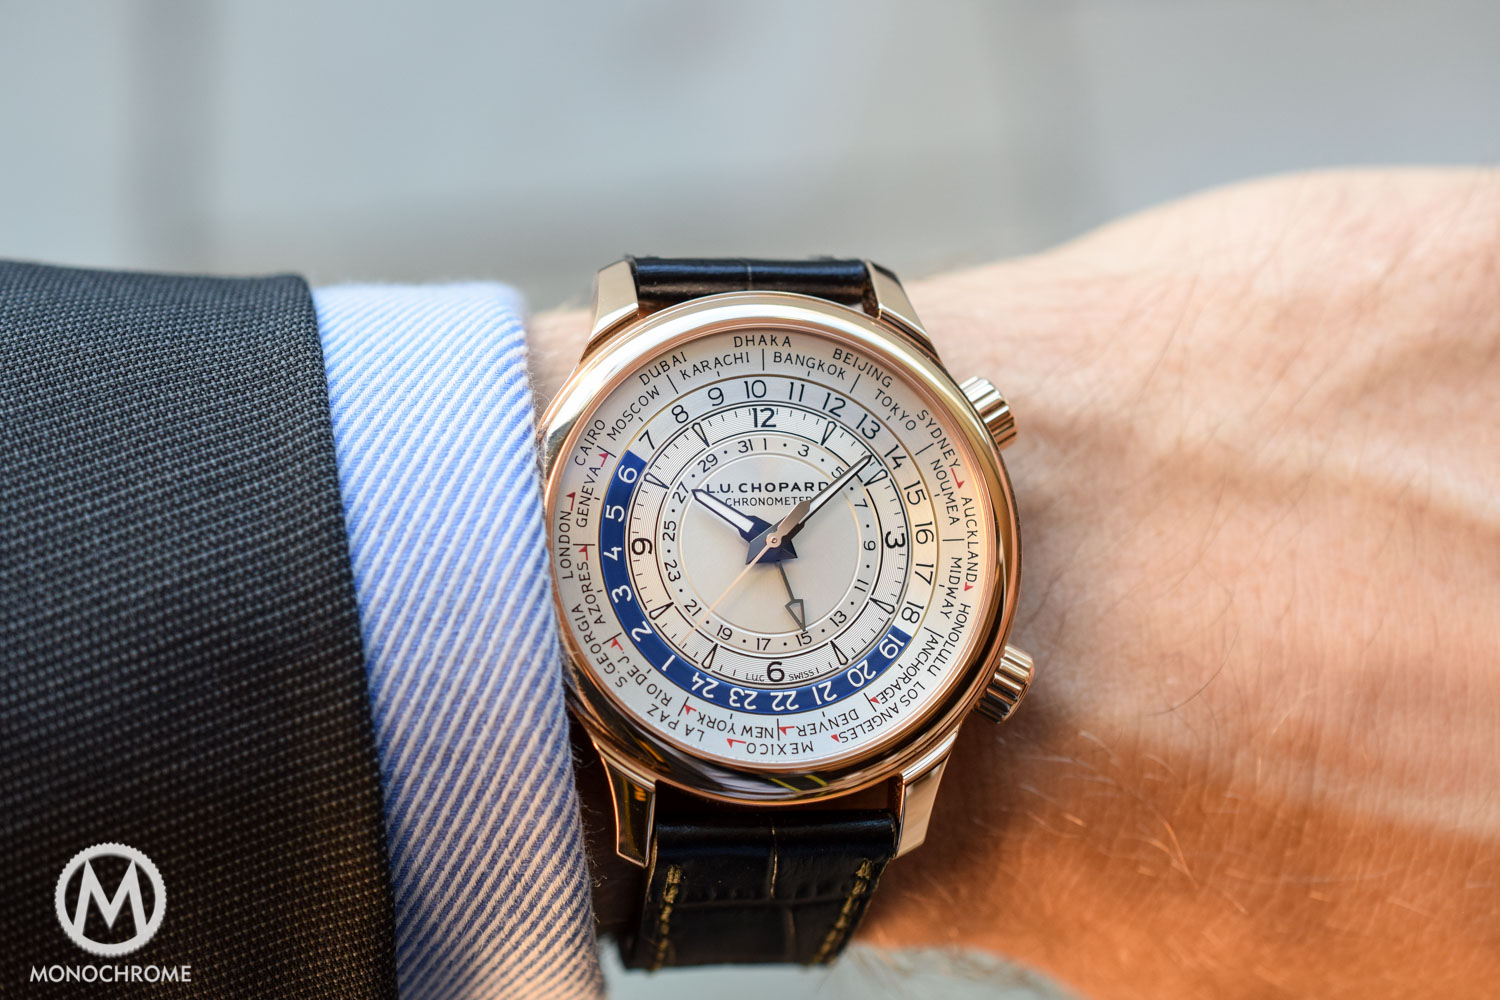 Chopard LUC Time Traveller One rose gold